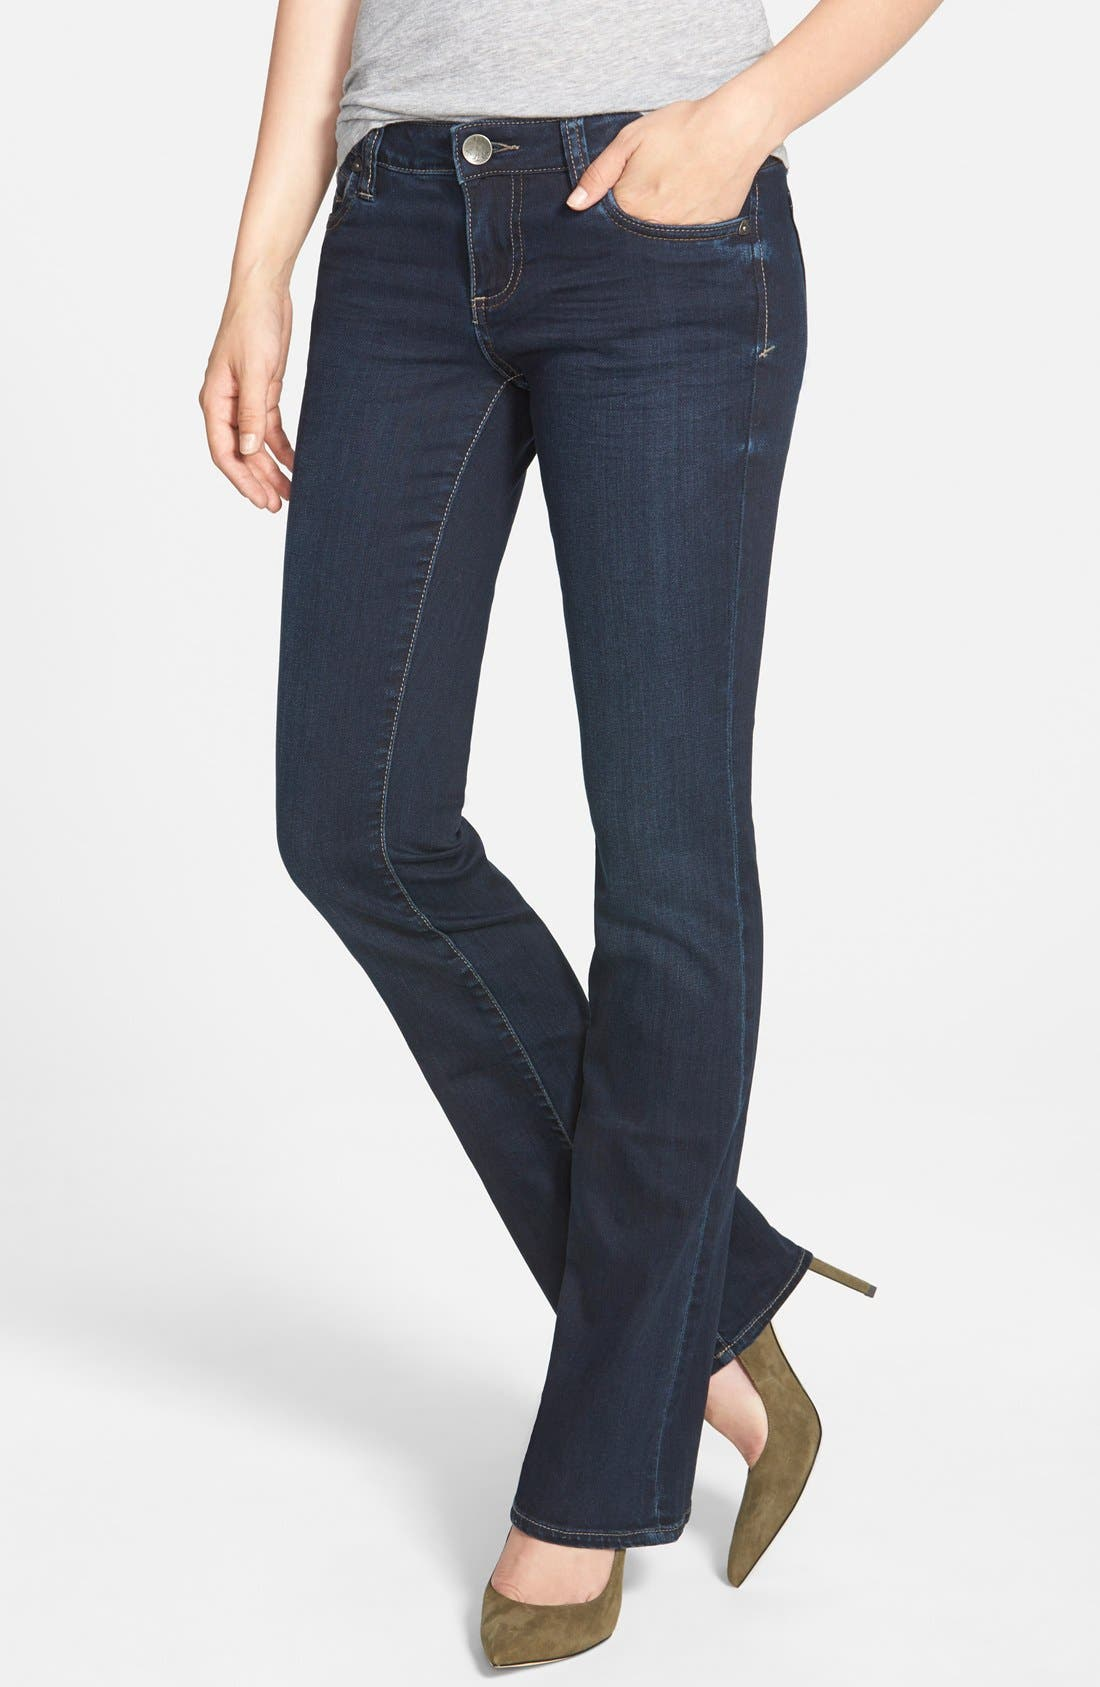 'Natalie' Stretch Bootcut Jeans,                             Main thumbnail 1, color,                             400